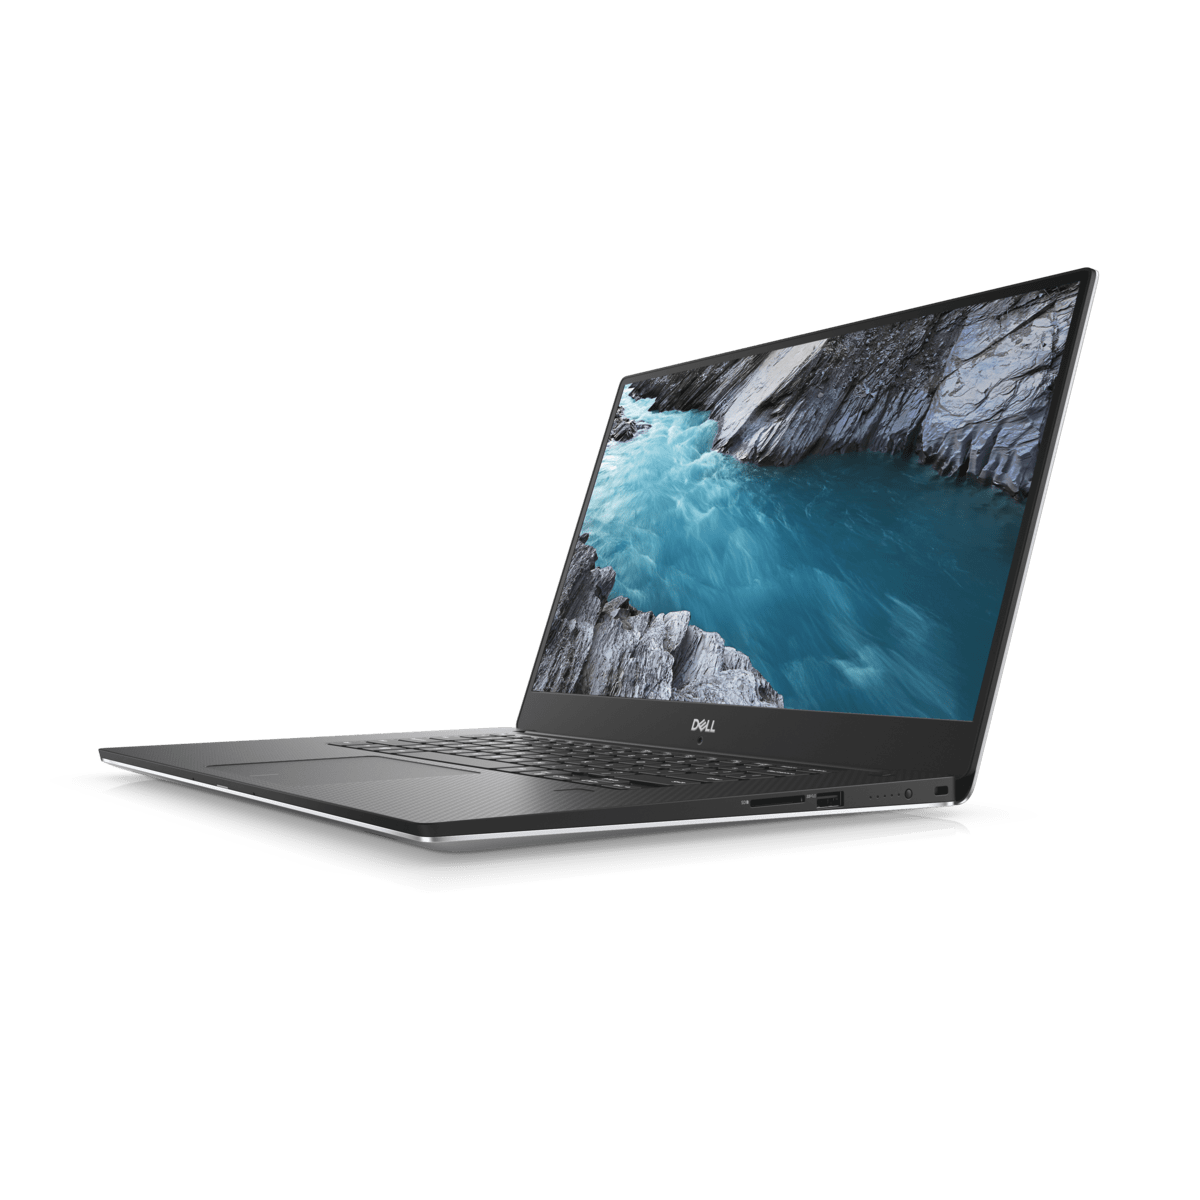 Dell adds eighth-gen goodness to its evergreen XPS 15 laptop